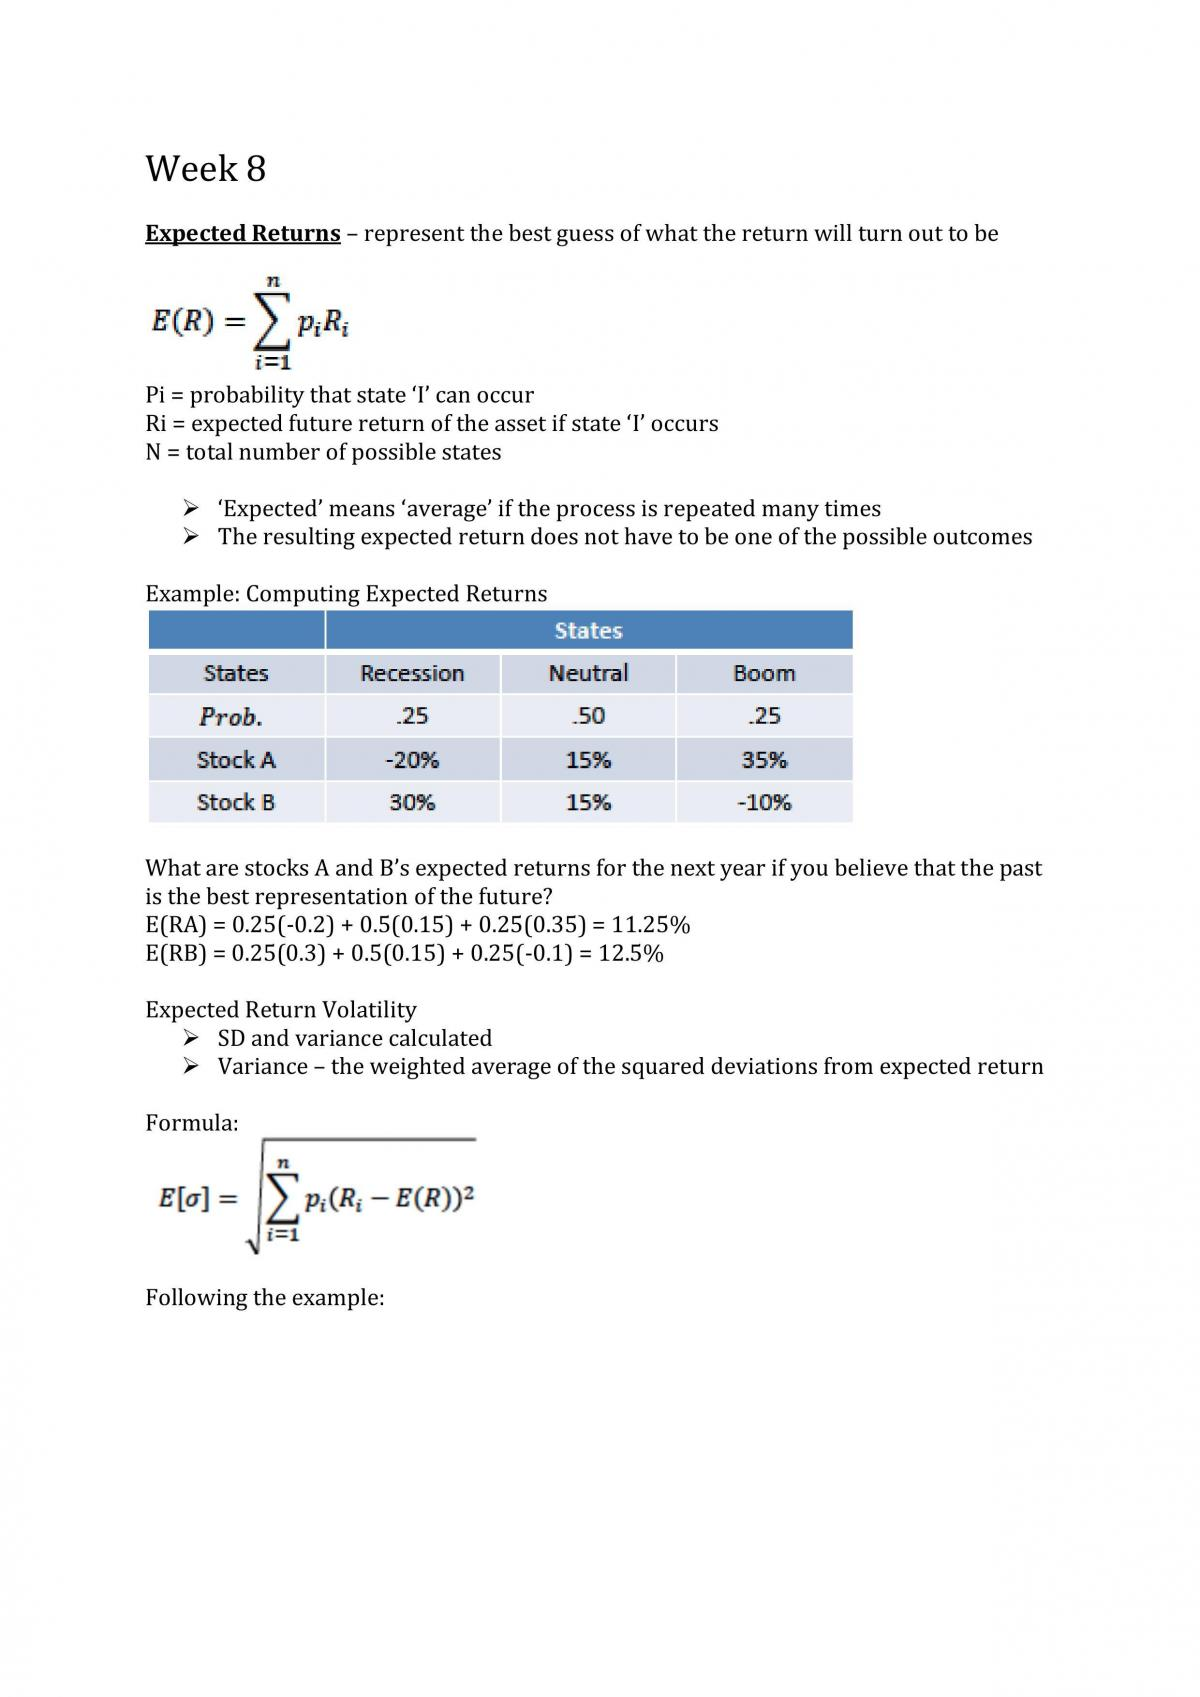 FINS1613 Week 8 Study Notes - Page 1